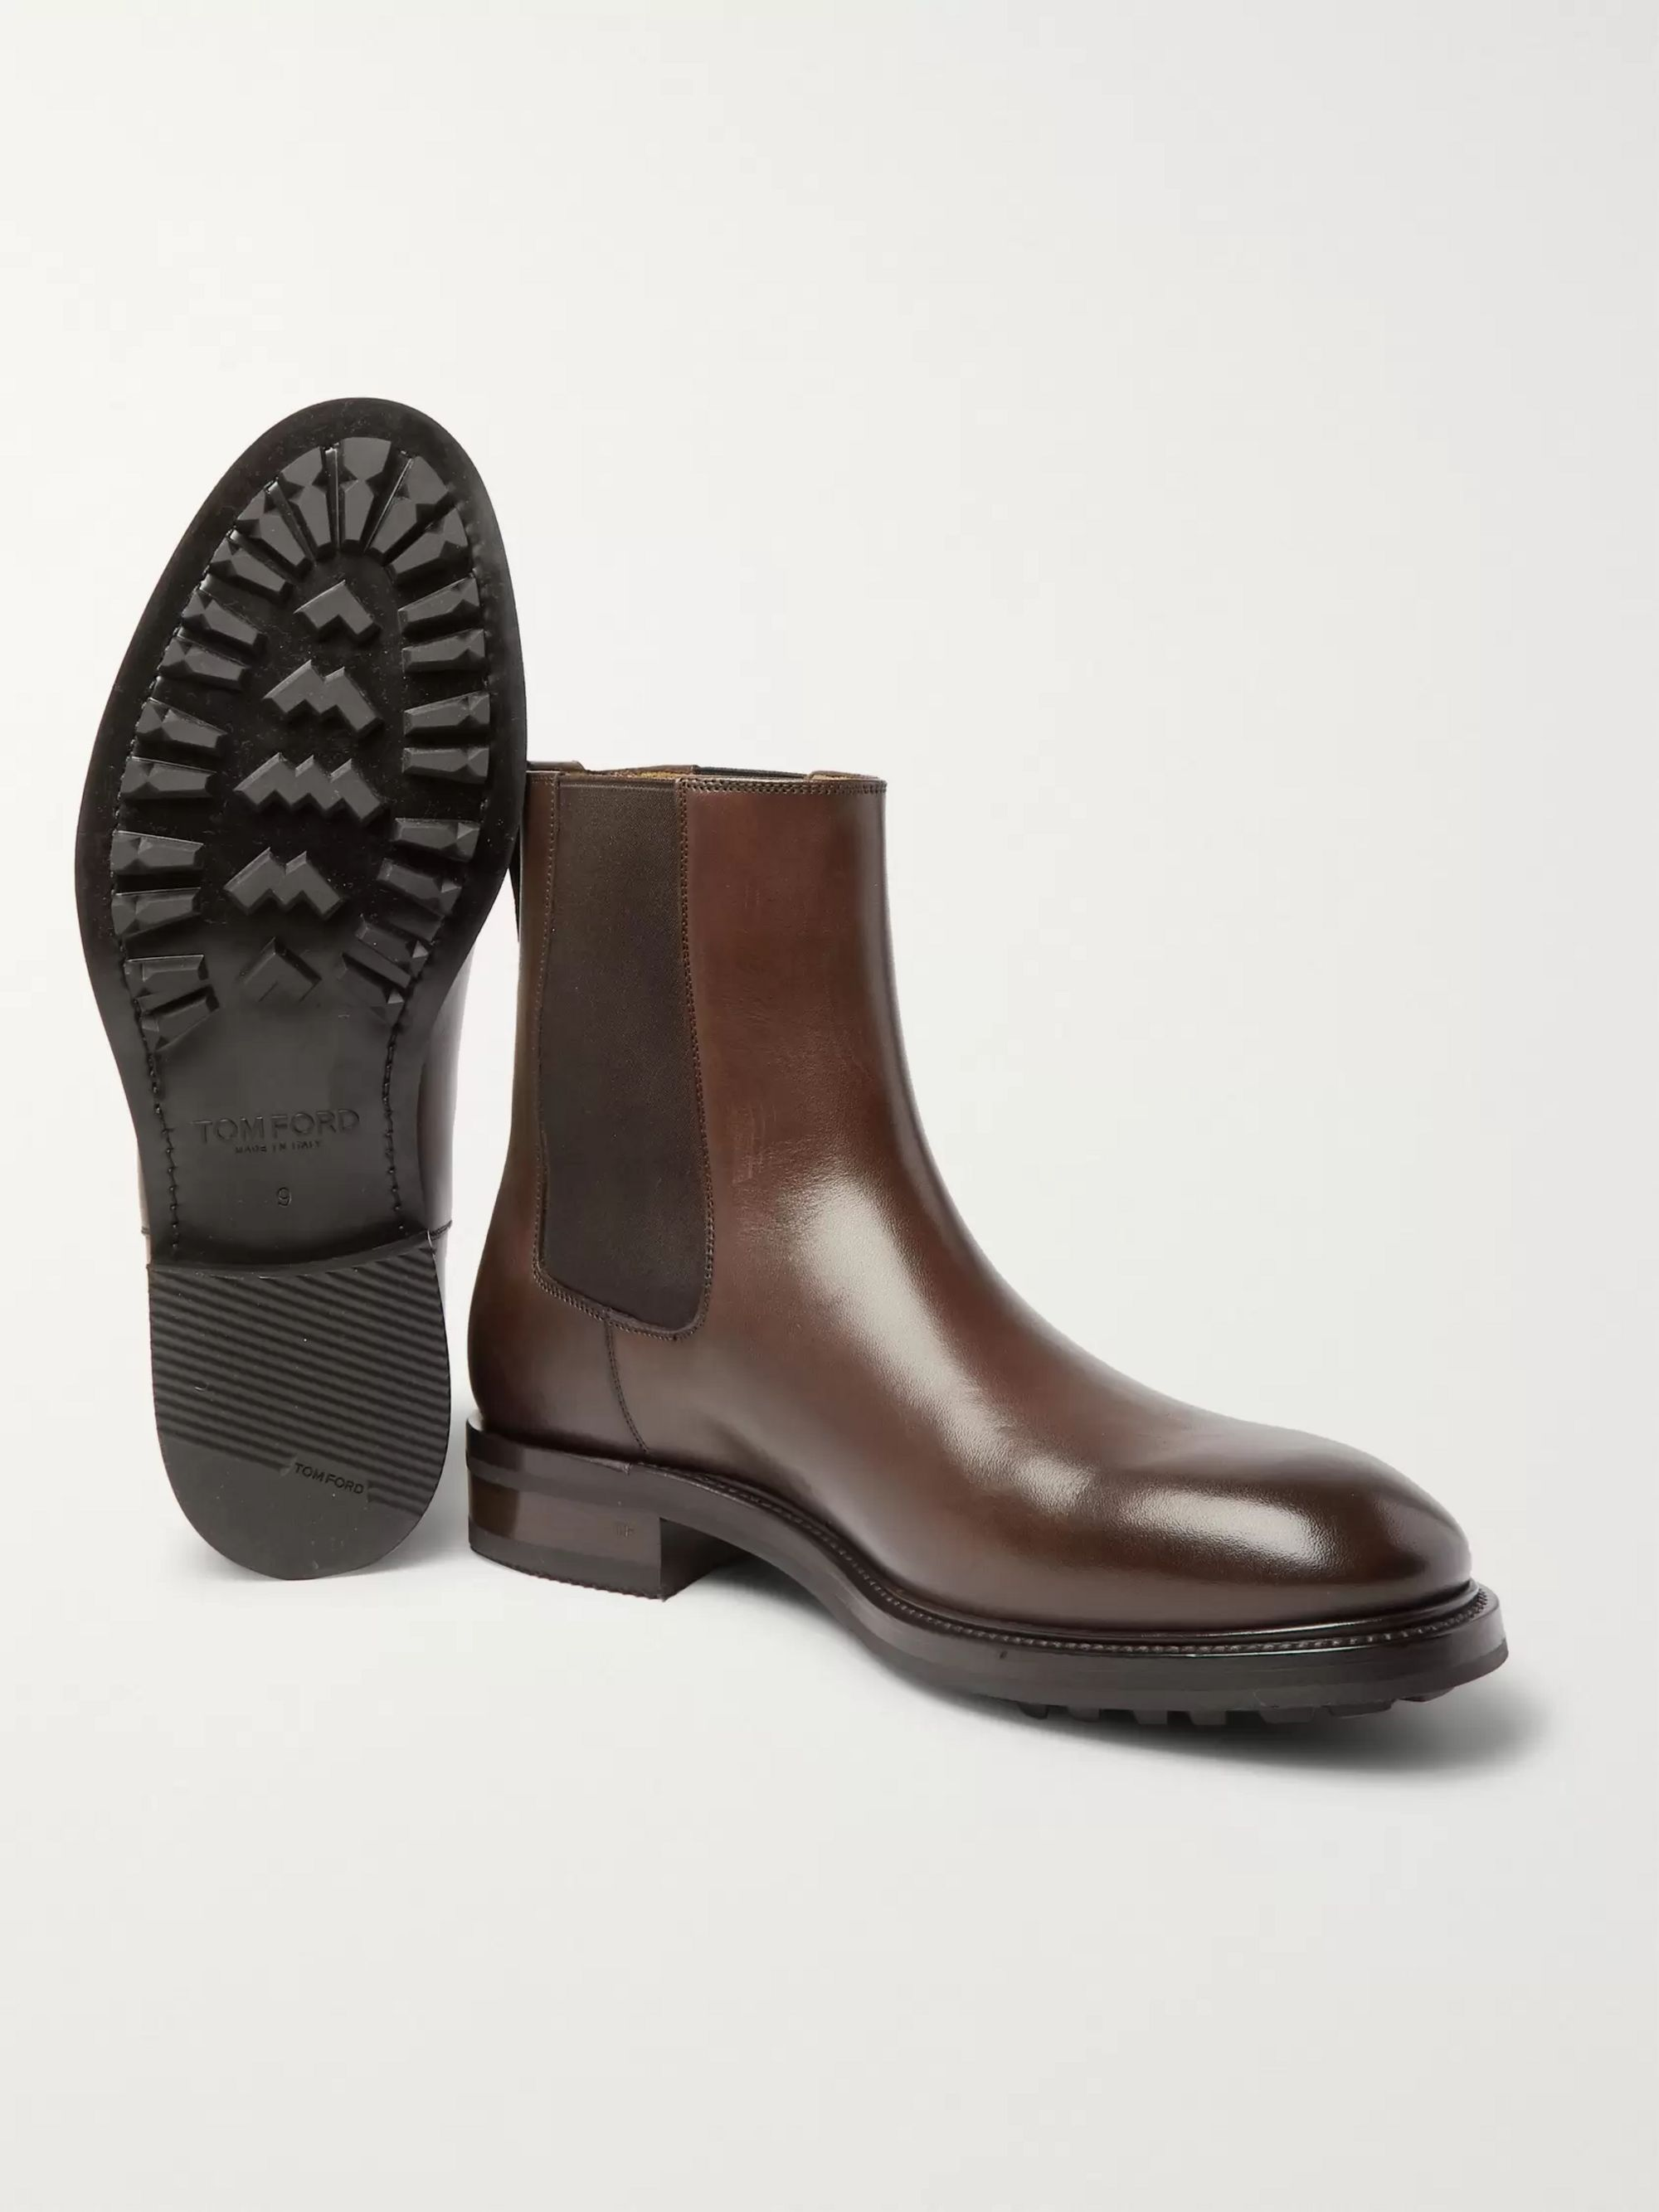 TOM FORD Stuart Polished-Leather Chelsea Boots